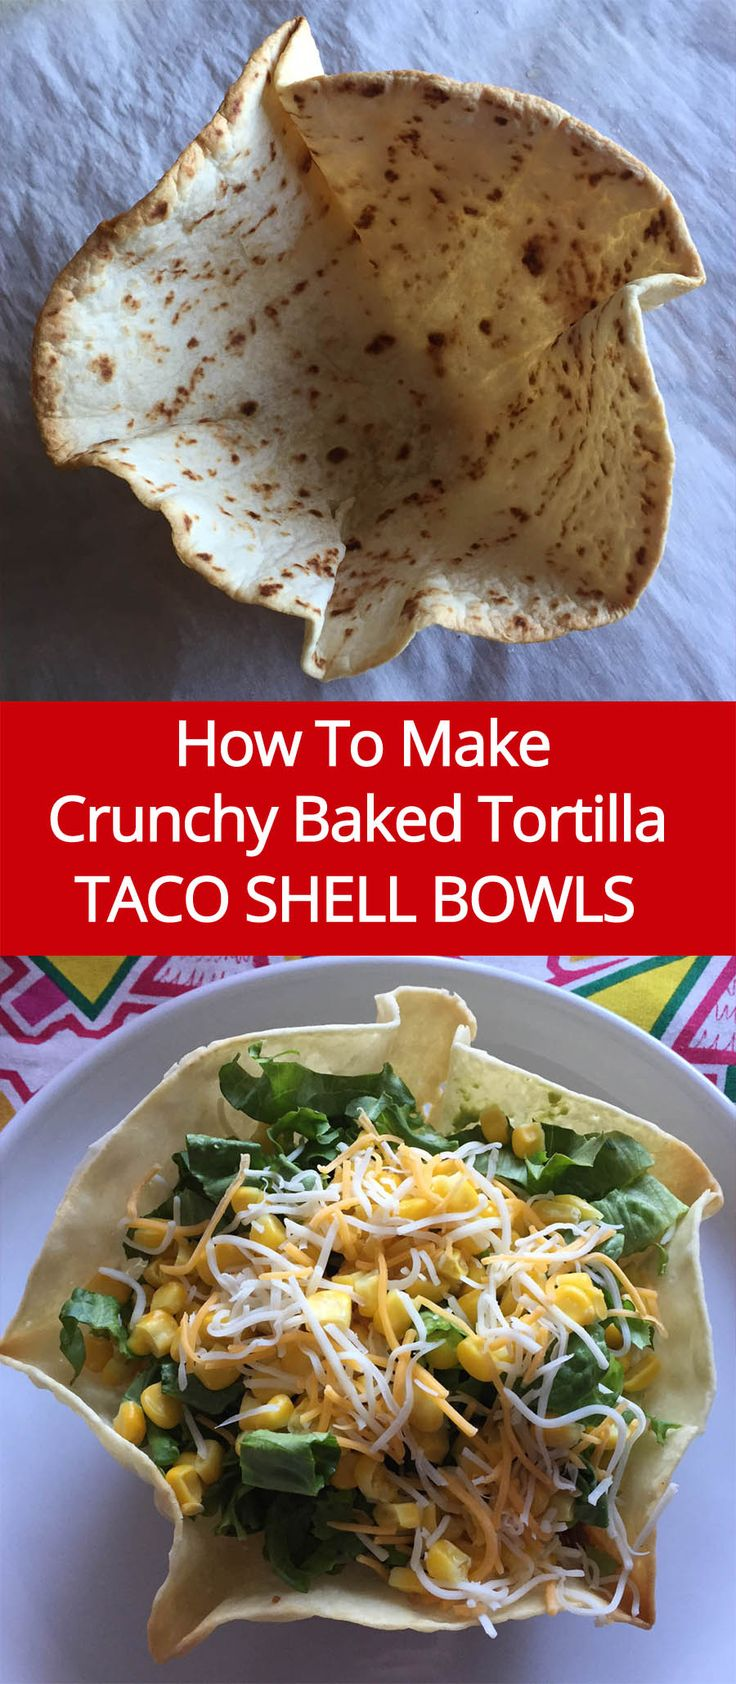 Taco Shell Bowls Recipe For Taco Salad | MelanieCooks.com